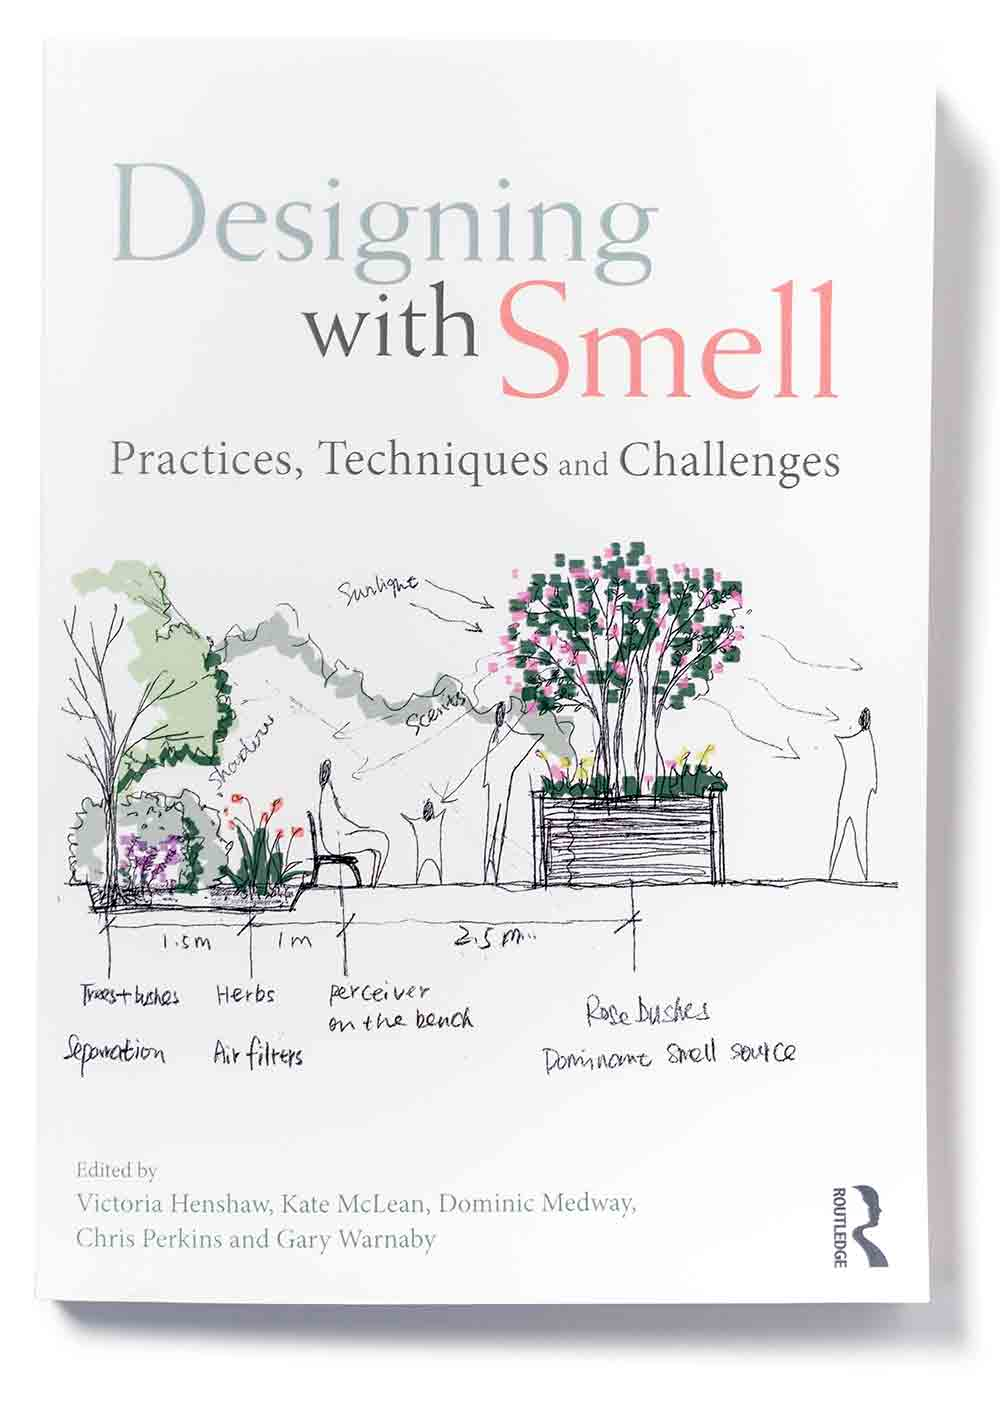 Designing with Smell: Practices, Techniques and Challenges – Victoria Henshaw, Kate McLean, Dominic Medway, Chris Perkins, Gary Warnaby